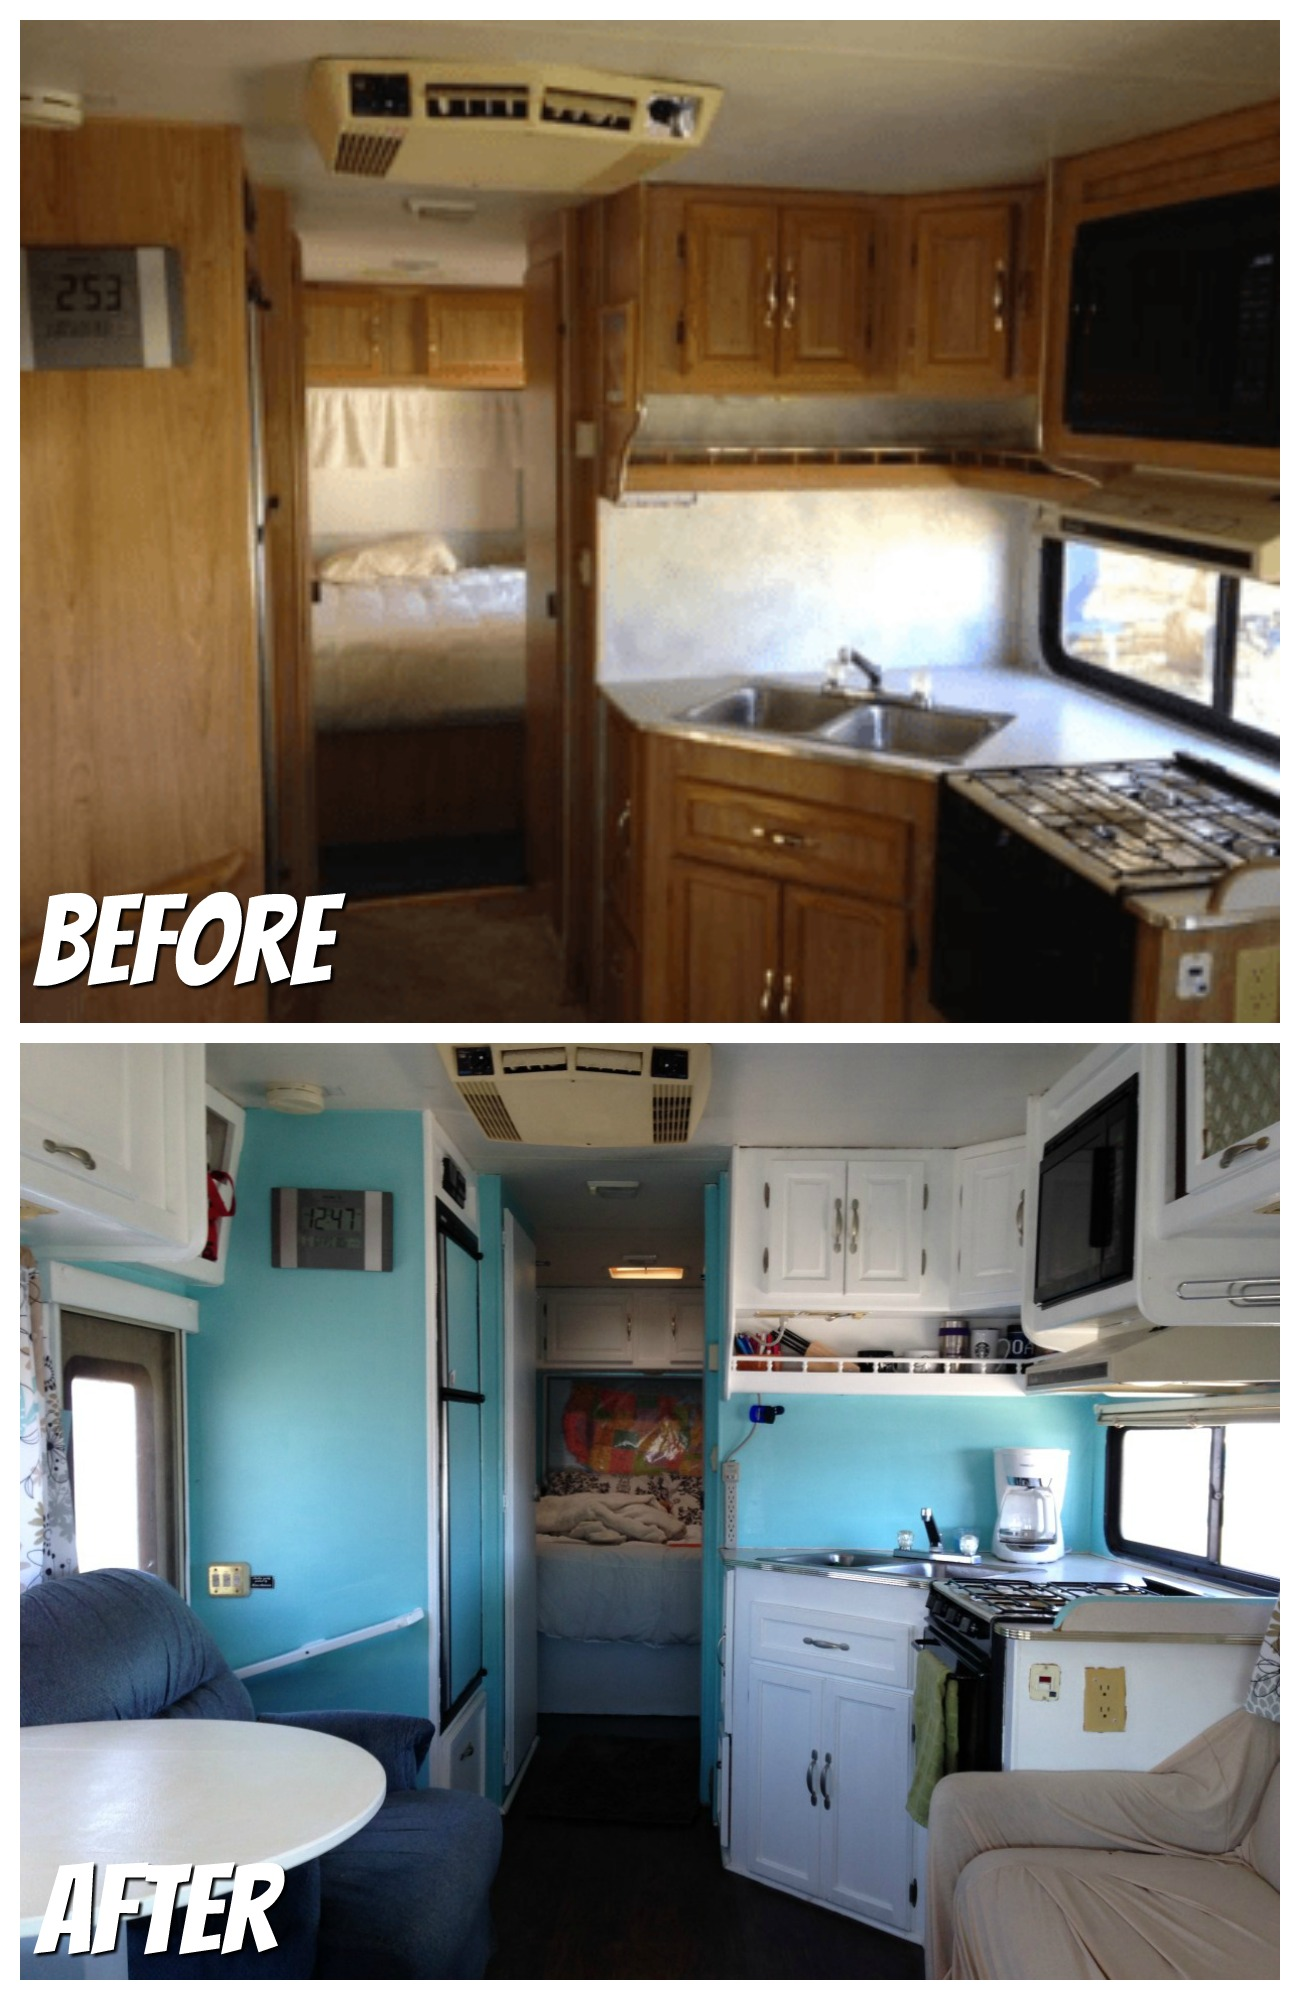 RVObsession.com - RV Renovations | Motorhome Renovations - Heath and Alyssa's first RV was a 1994 Class C Motorhome that they named Franklin. Prior to setting out on a 50 state tour for their honeymoon, they gave Franklin a bit of a facelift.